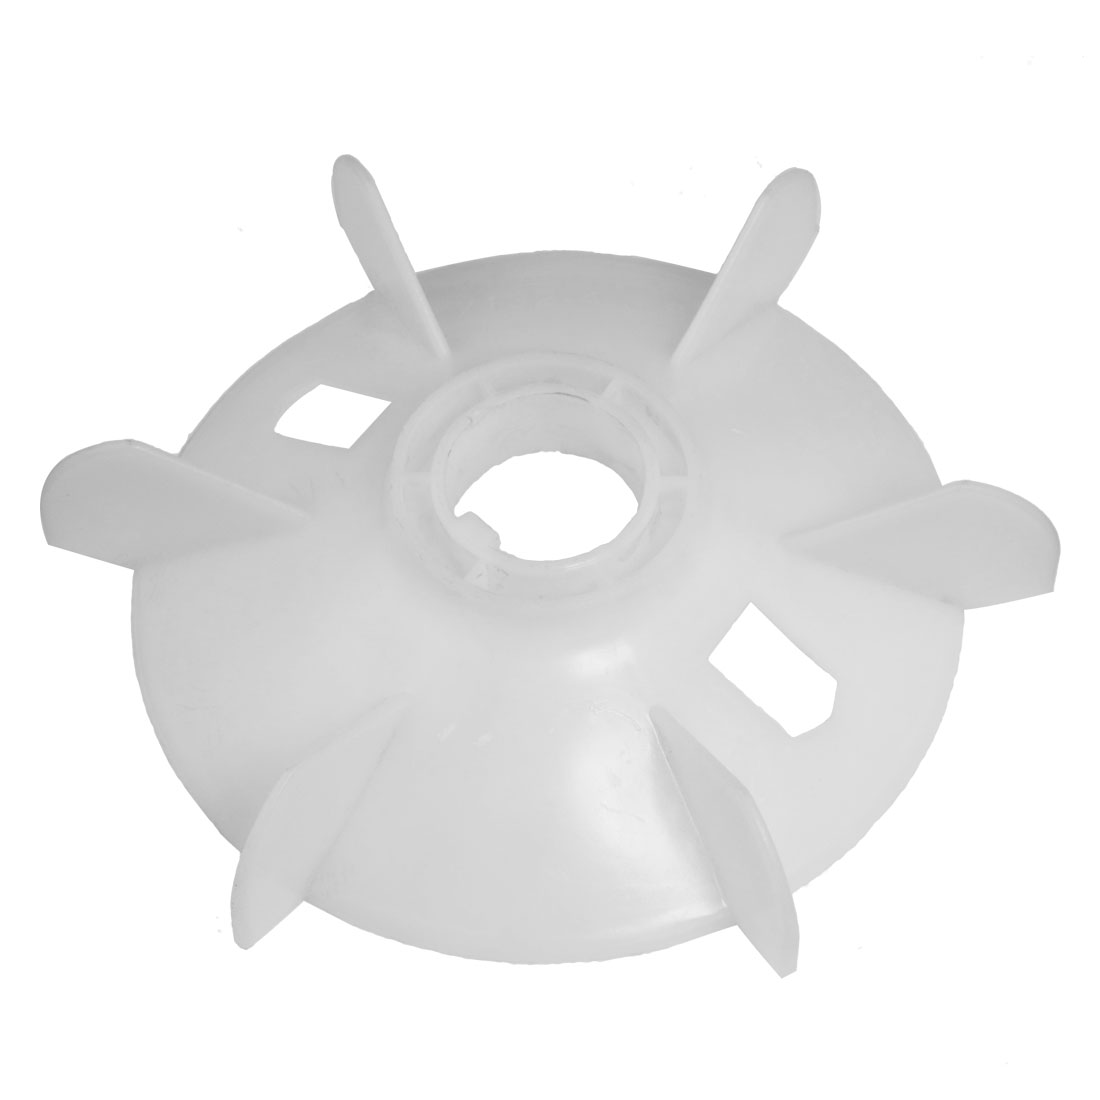 Machine Part Off White Plastic 37mm Inner Dia. Six Impeller Motor Fan Vane